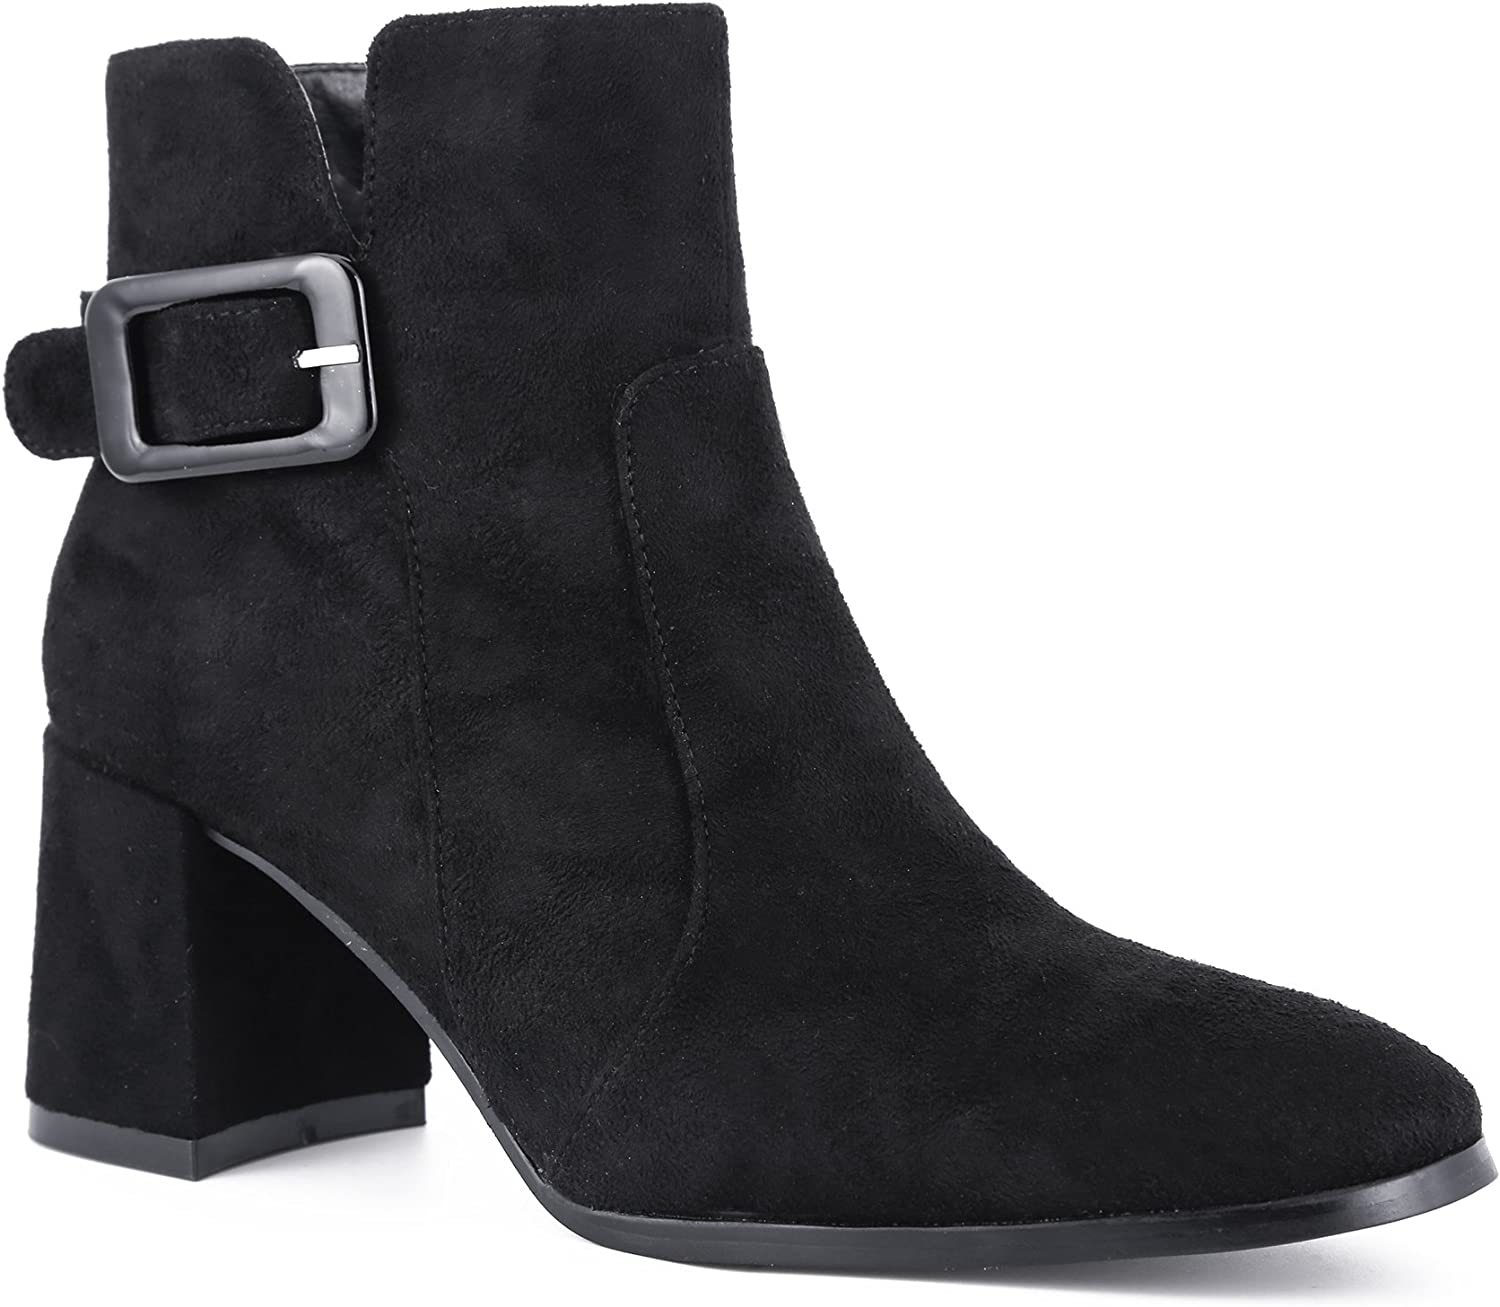 MaxMuXun Womens Zipper shoes Block Heel Buckle Ankle Boots